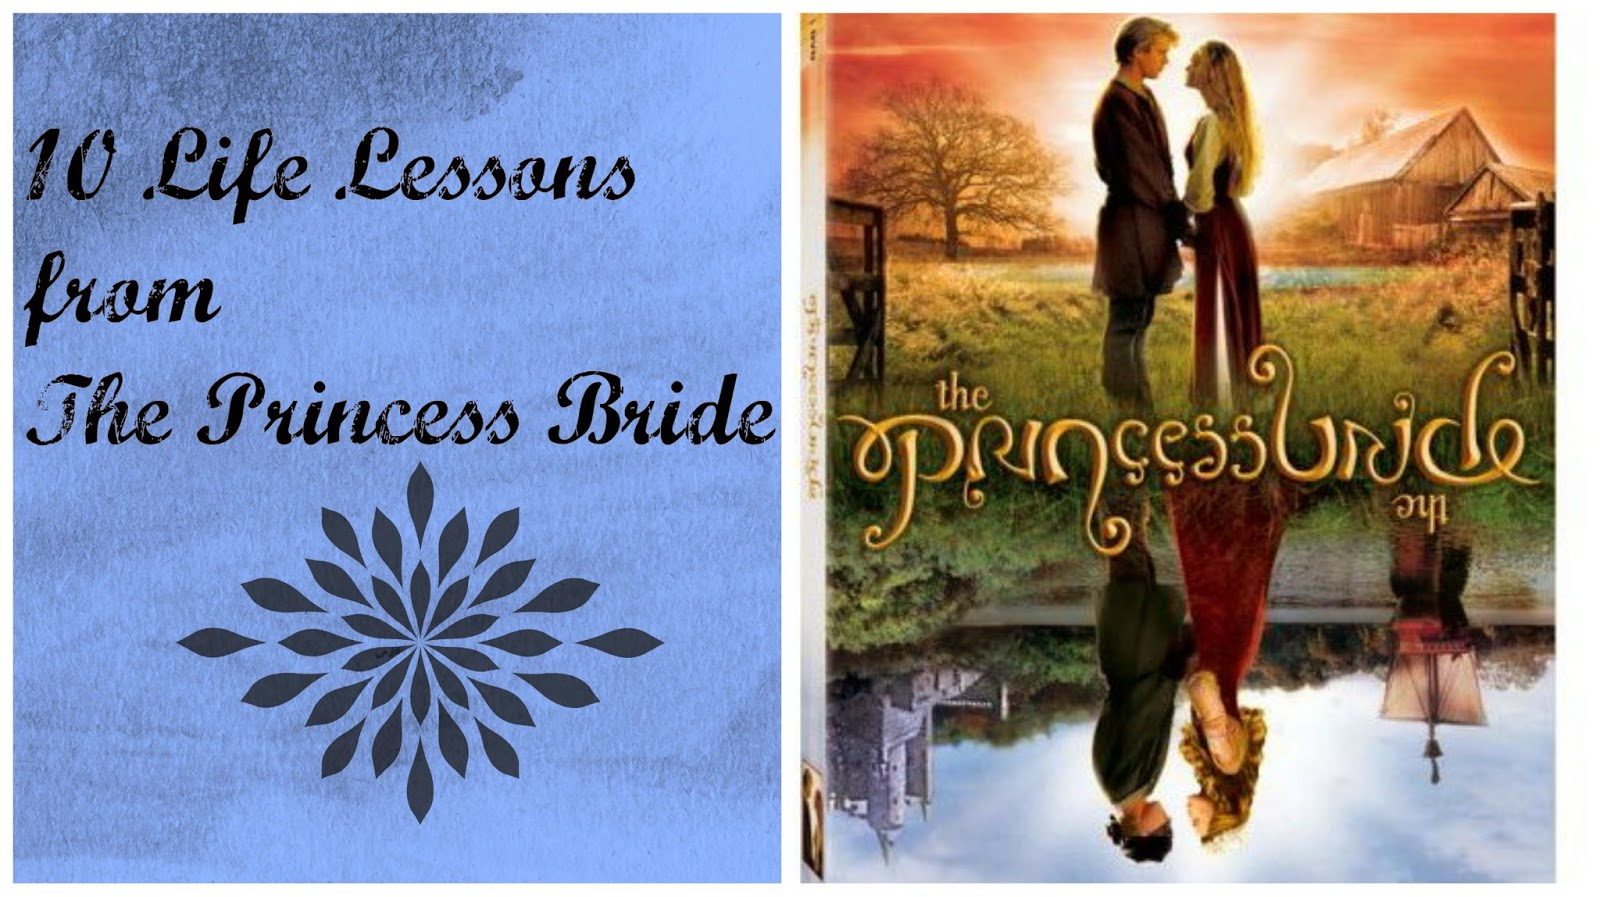 10 Life Lessons from The Princess Bride